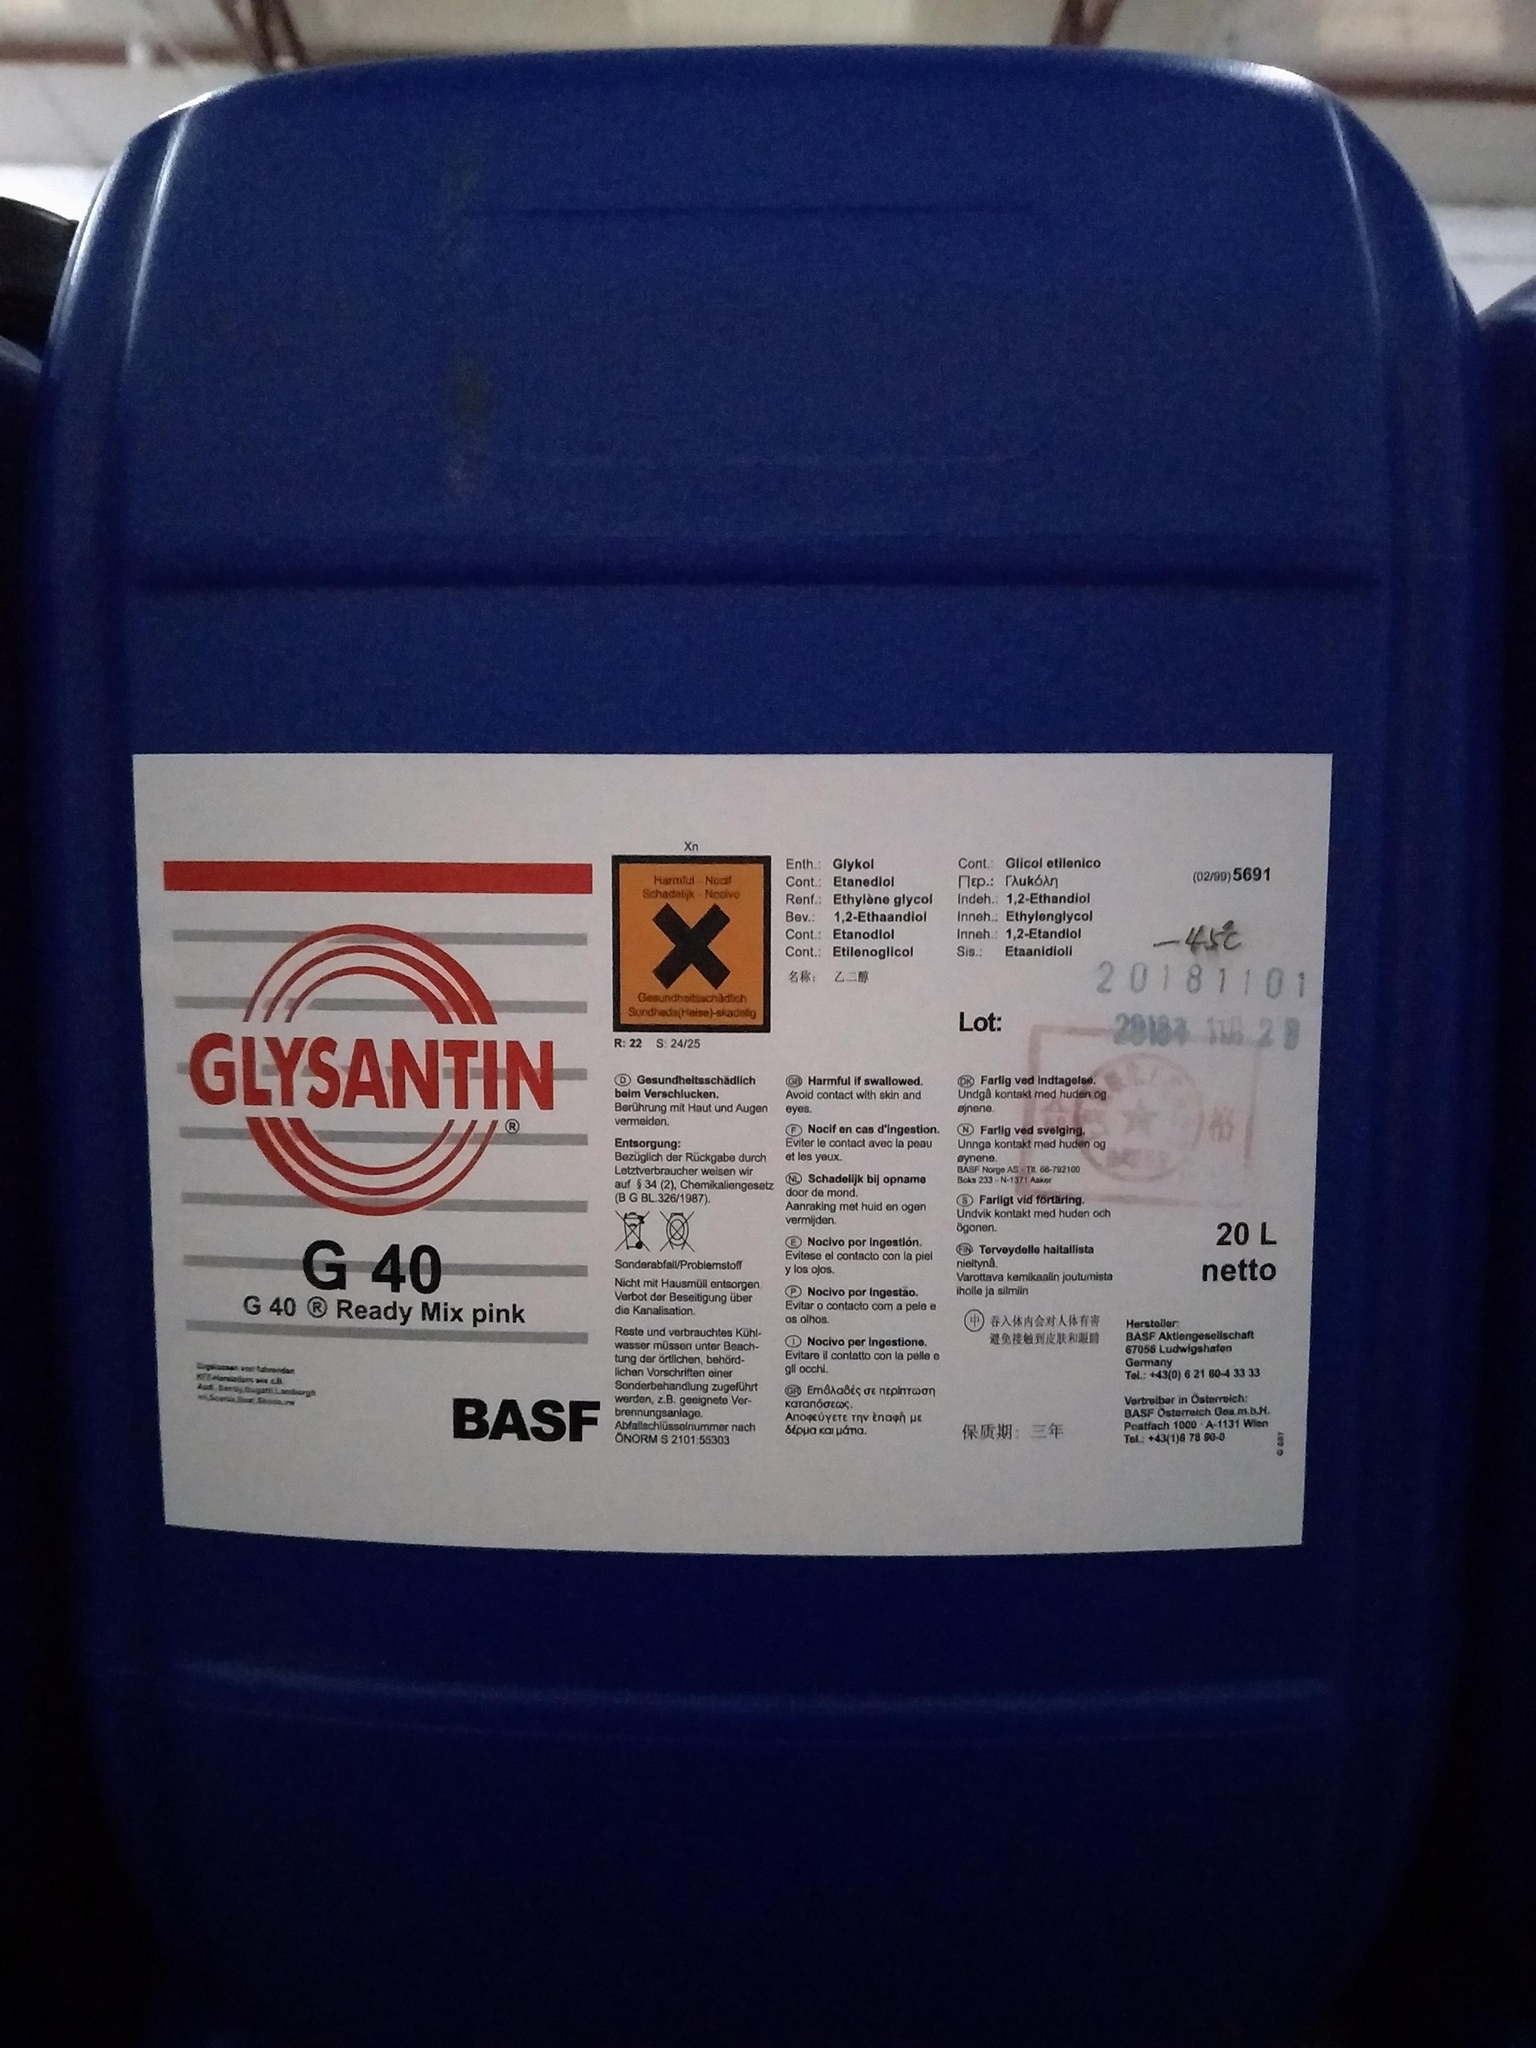 GLYSANTIN G40 Ready Mix pink